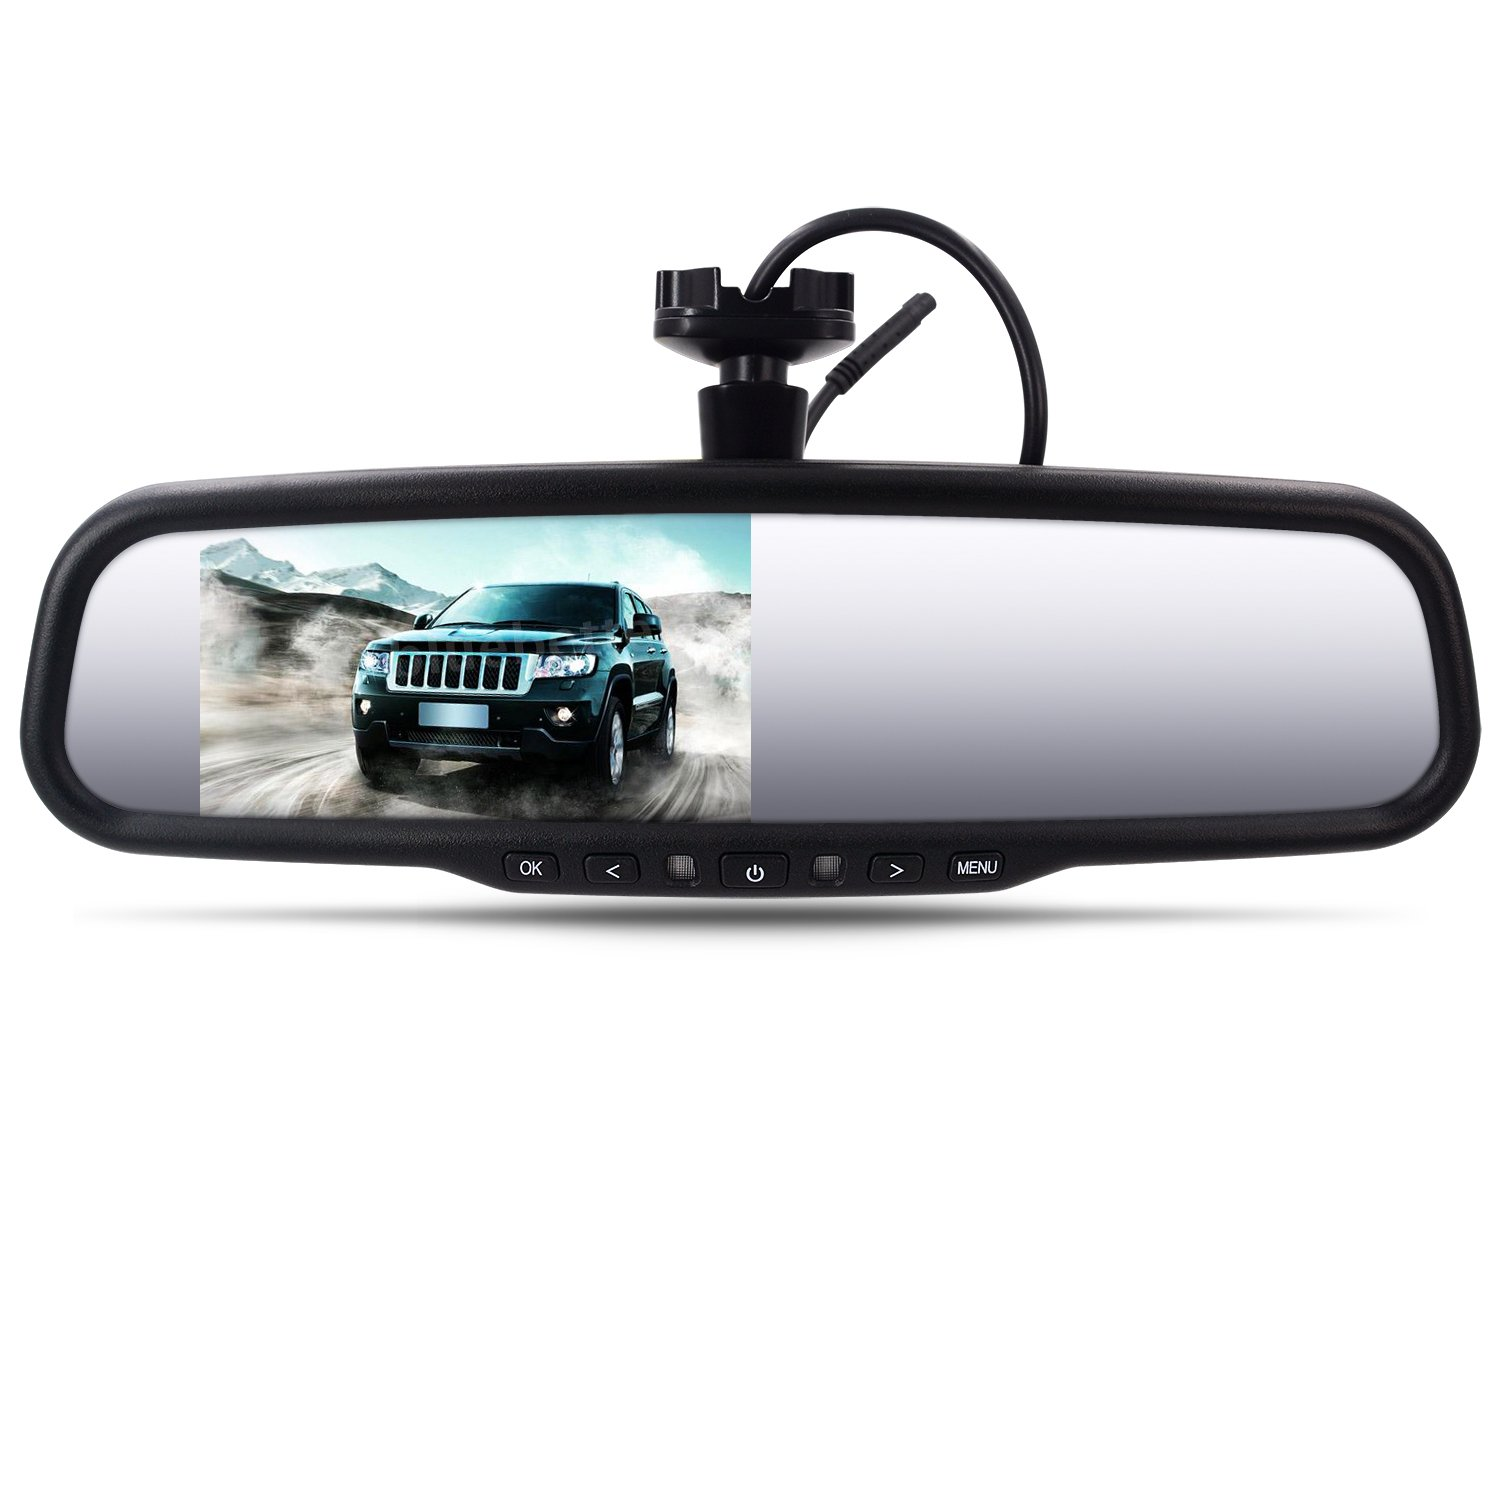 ARECORD AR-430 4.3 inch Car Rear View Mirror Monitor Auto Adjusting Brightness Support Auto Parking Assistance System